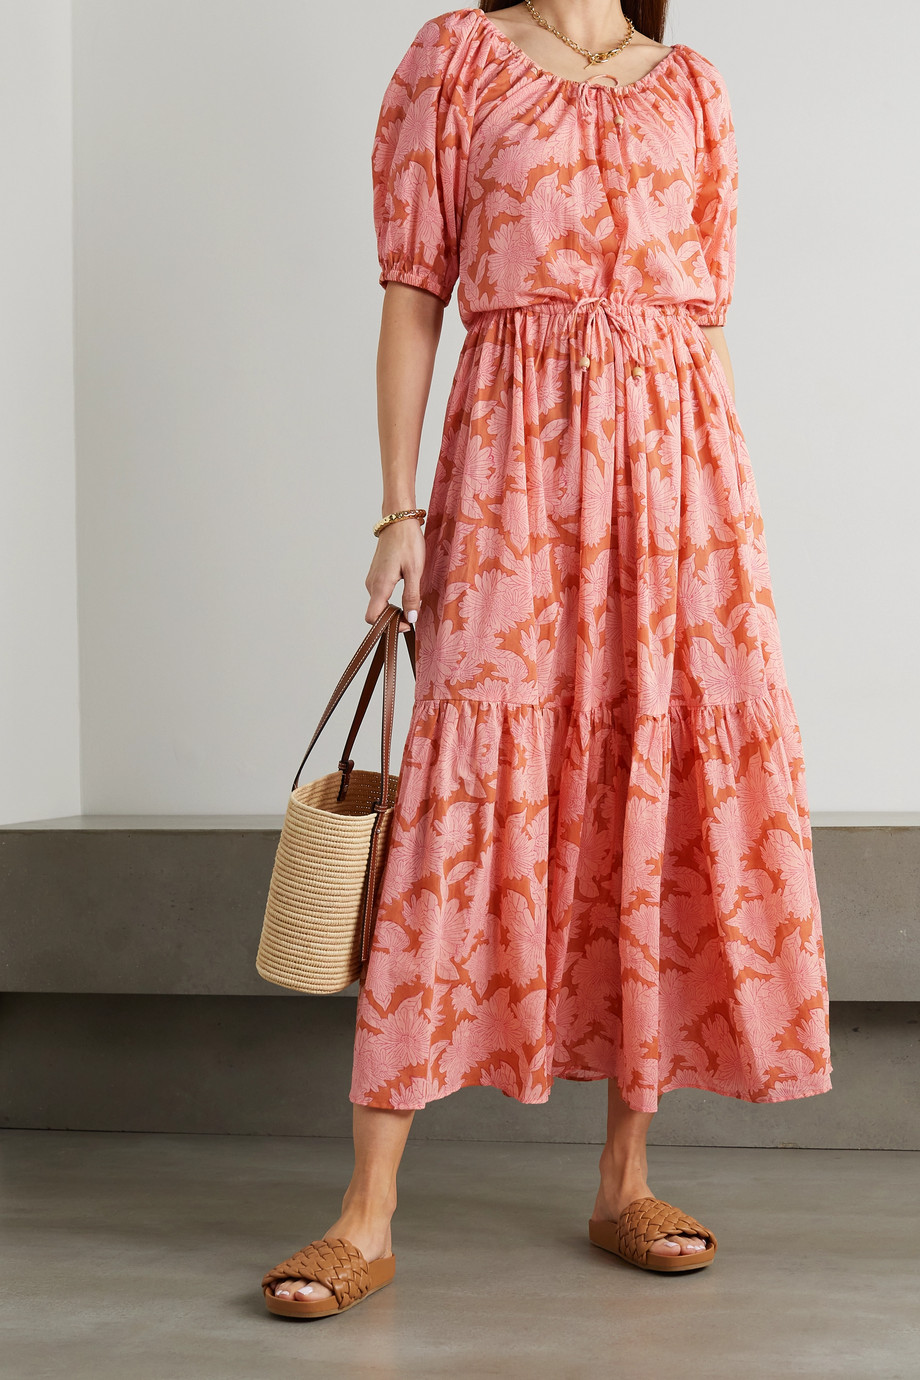 HANNAH ARTWEAR + NET SUSTAIN Lotus tiered floral-print cotton dress